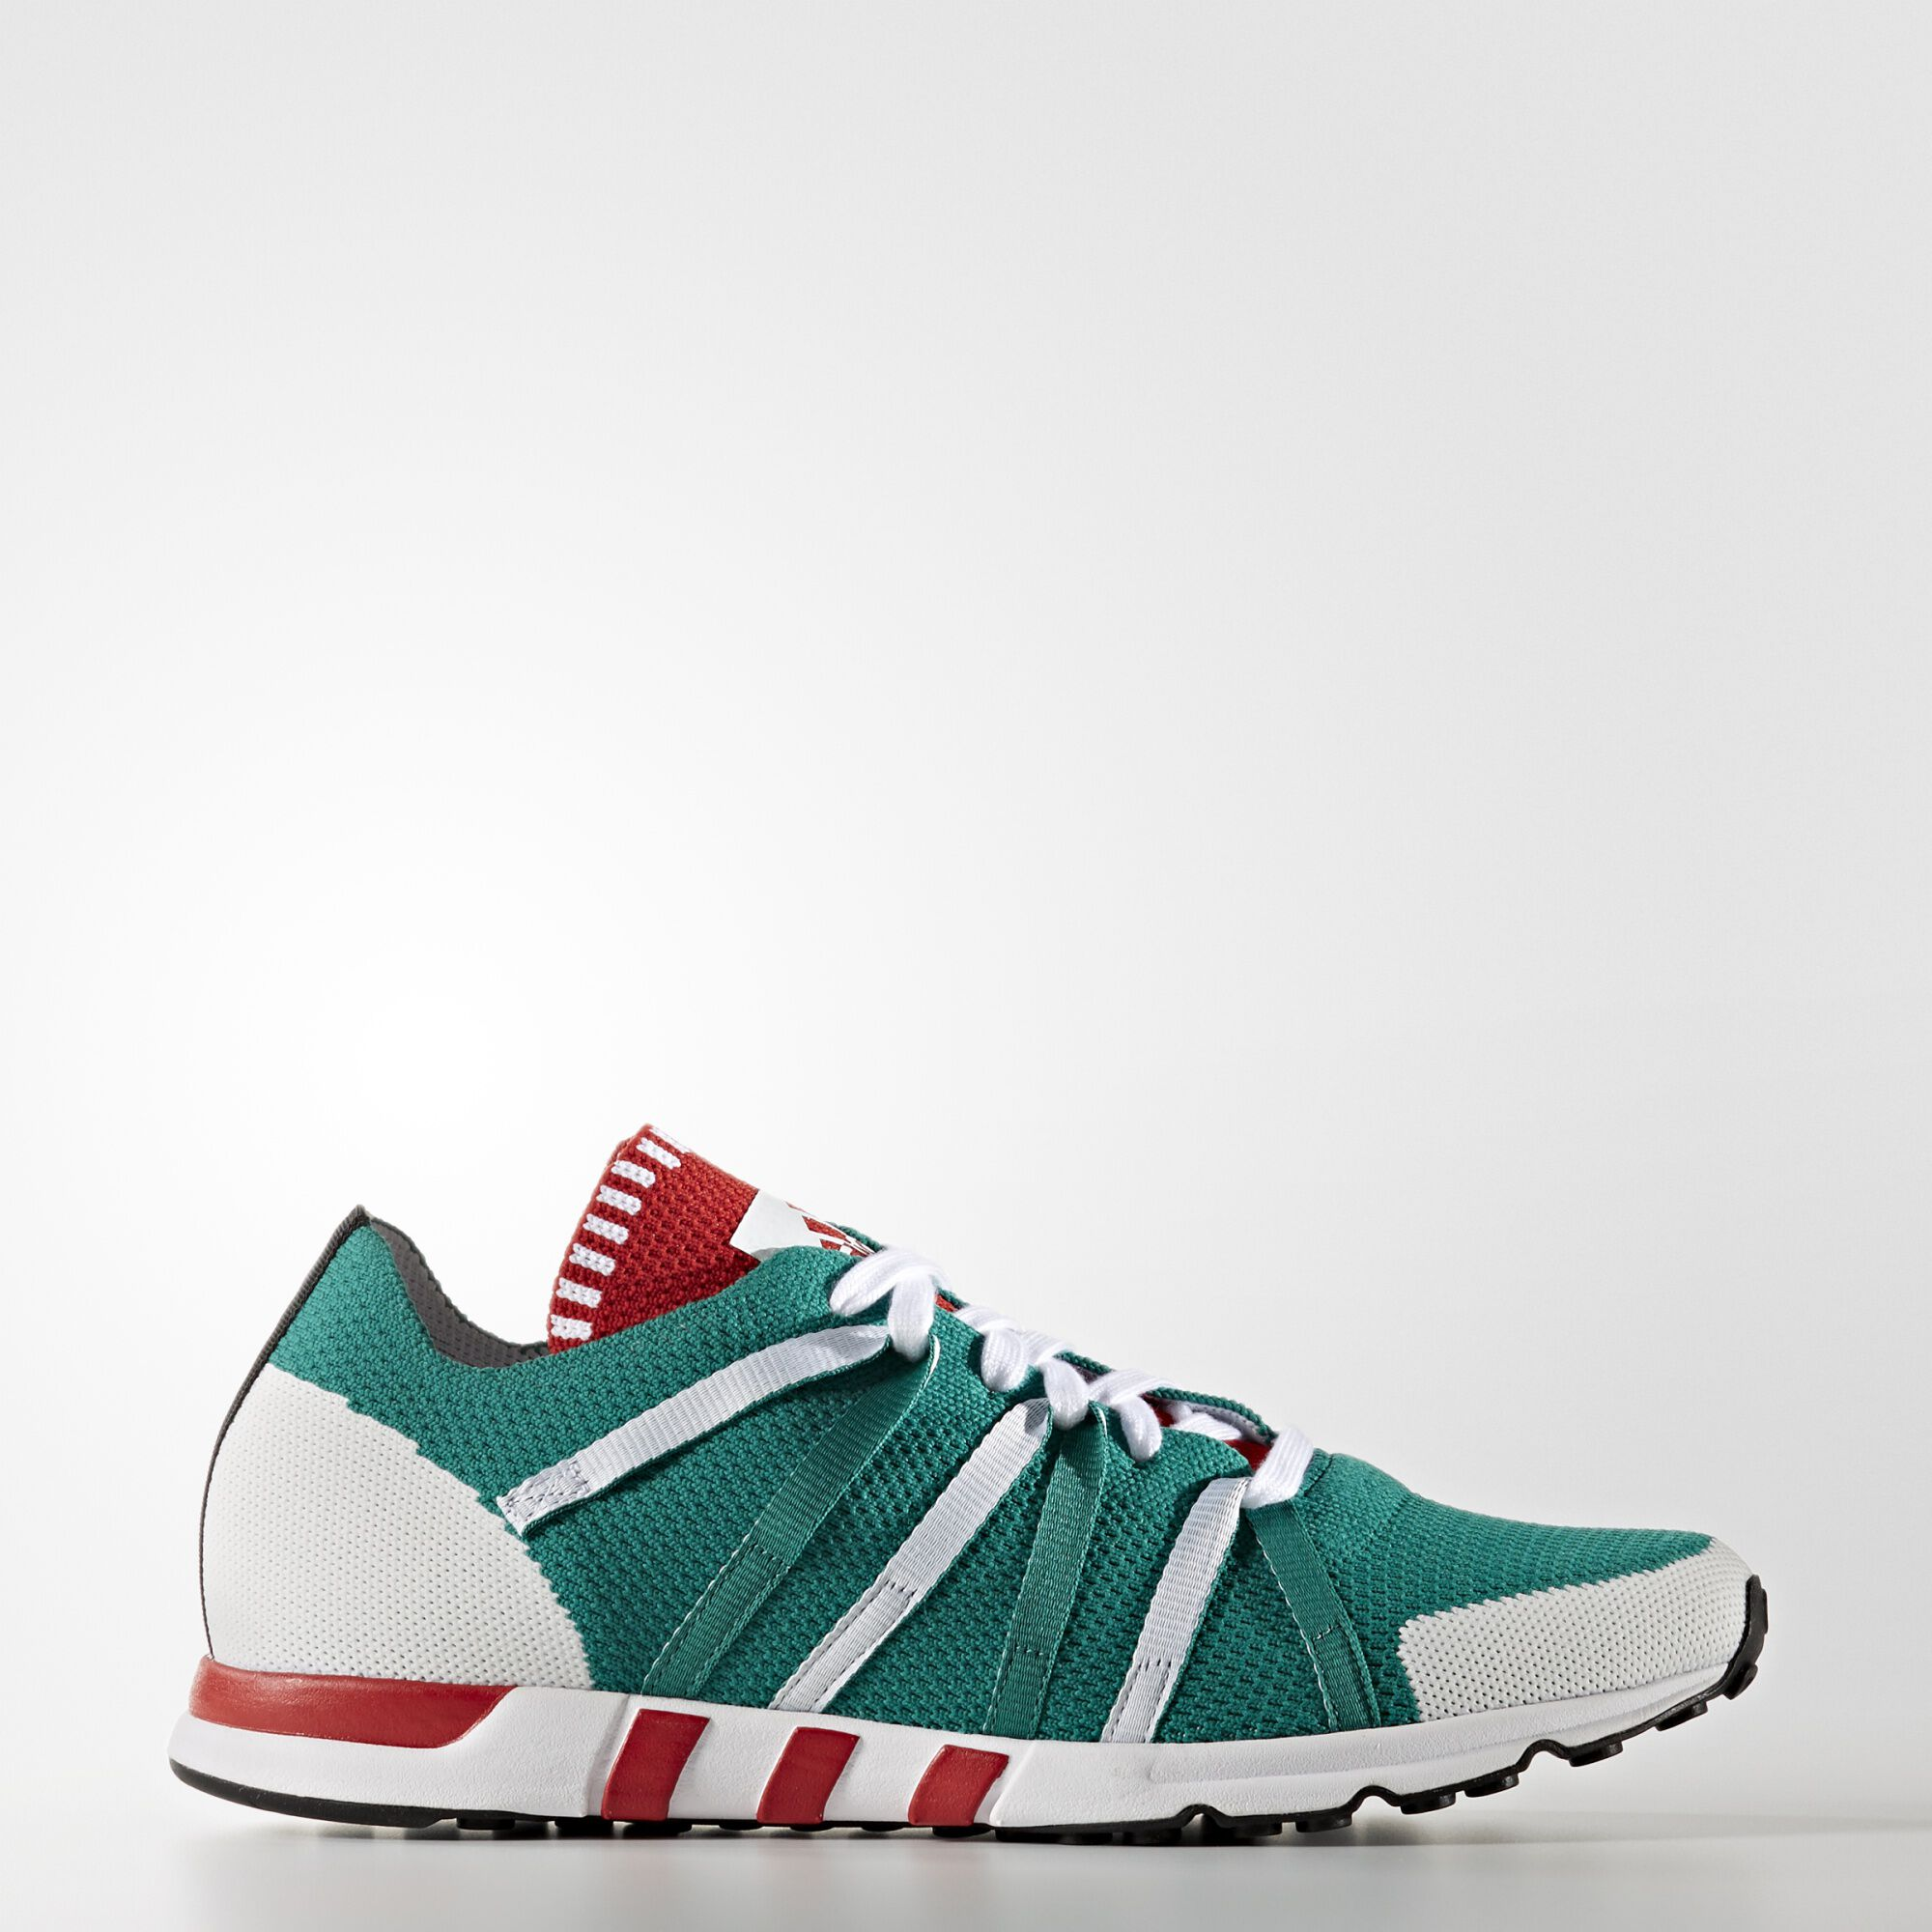 The Highs and Lows x adidas EQT Support 93 Interceptor Drops